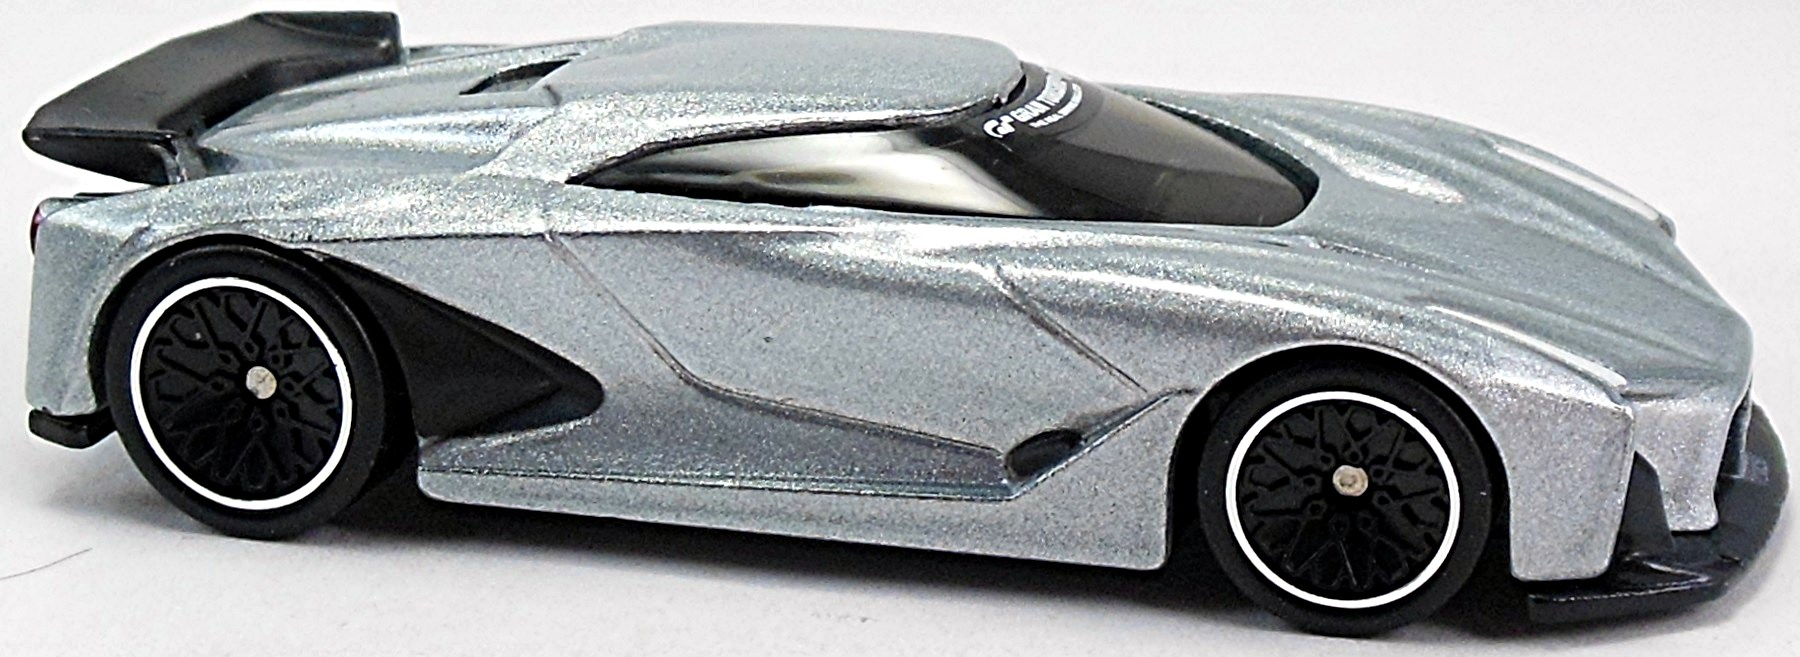 Nissan Concept 2020 Vision GT - XXmm - 2016 | Hot Wheels ...